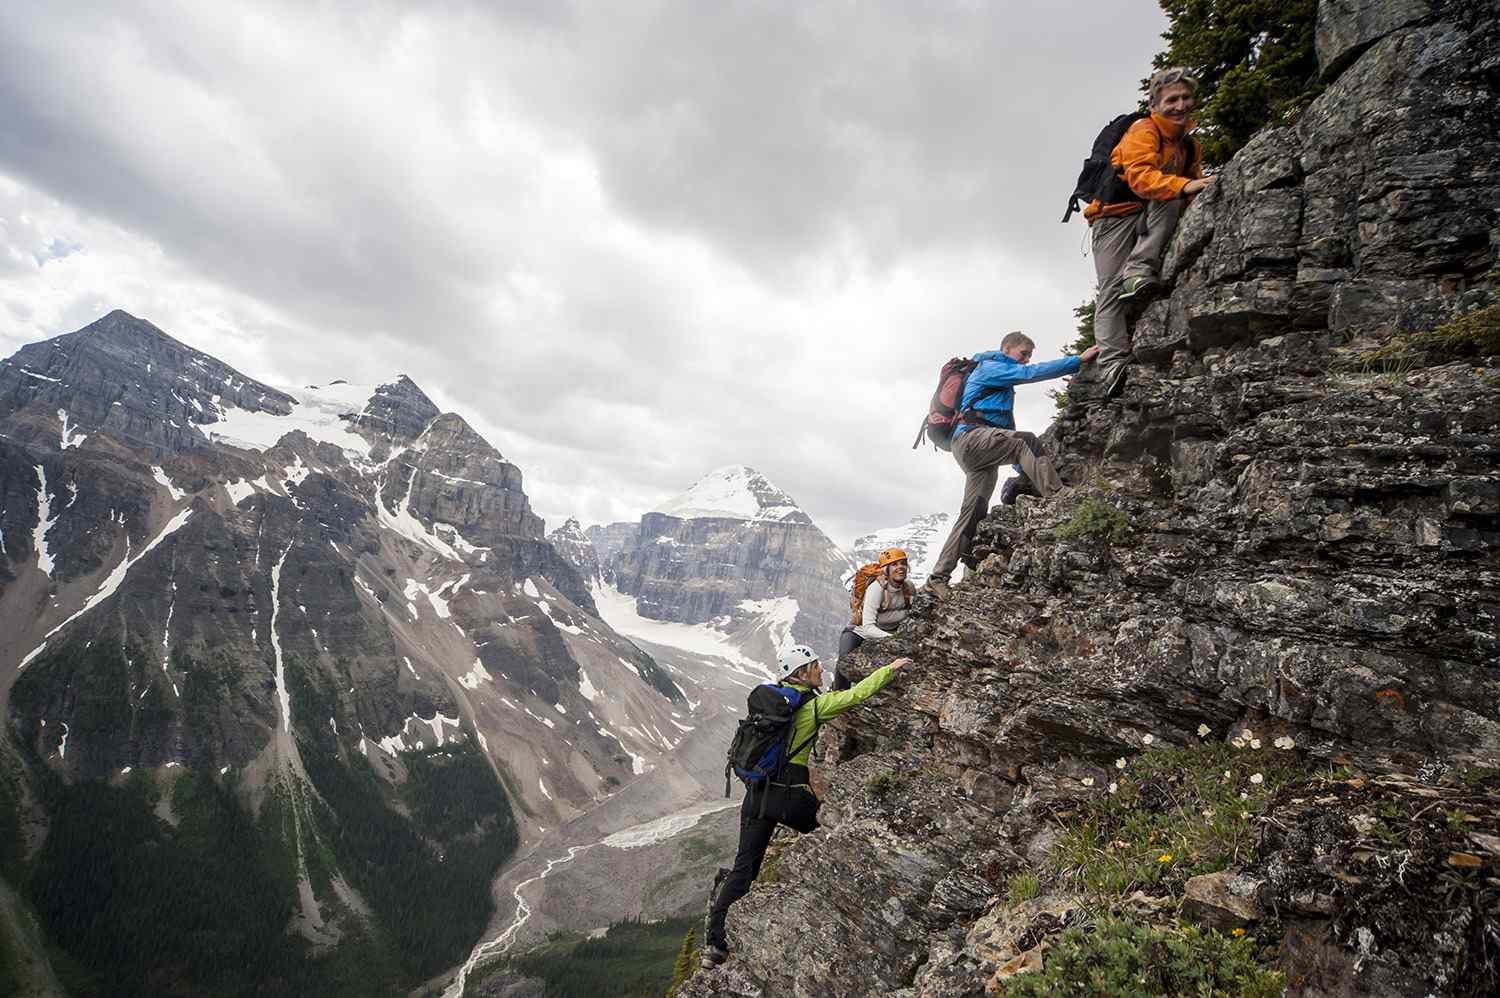 Four Mountaineers Ascend Cliff Above Mountains